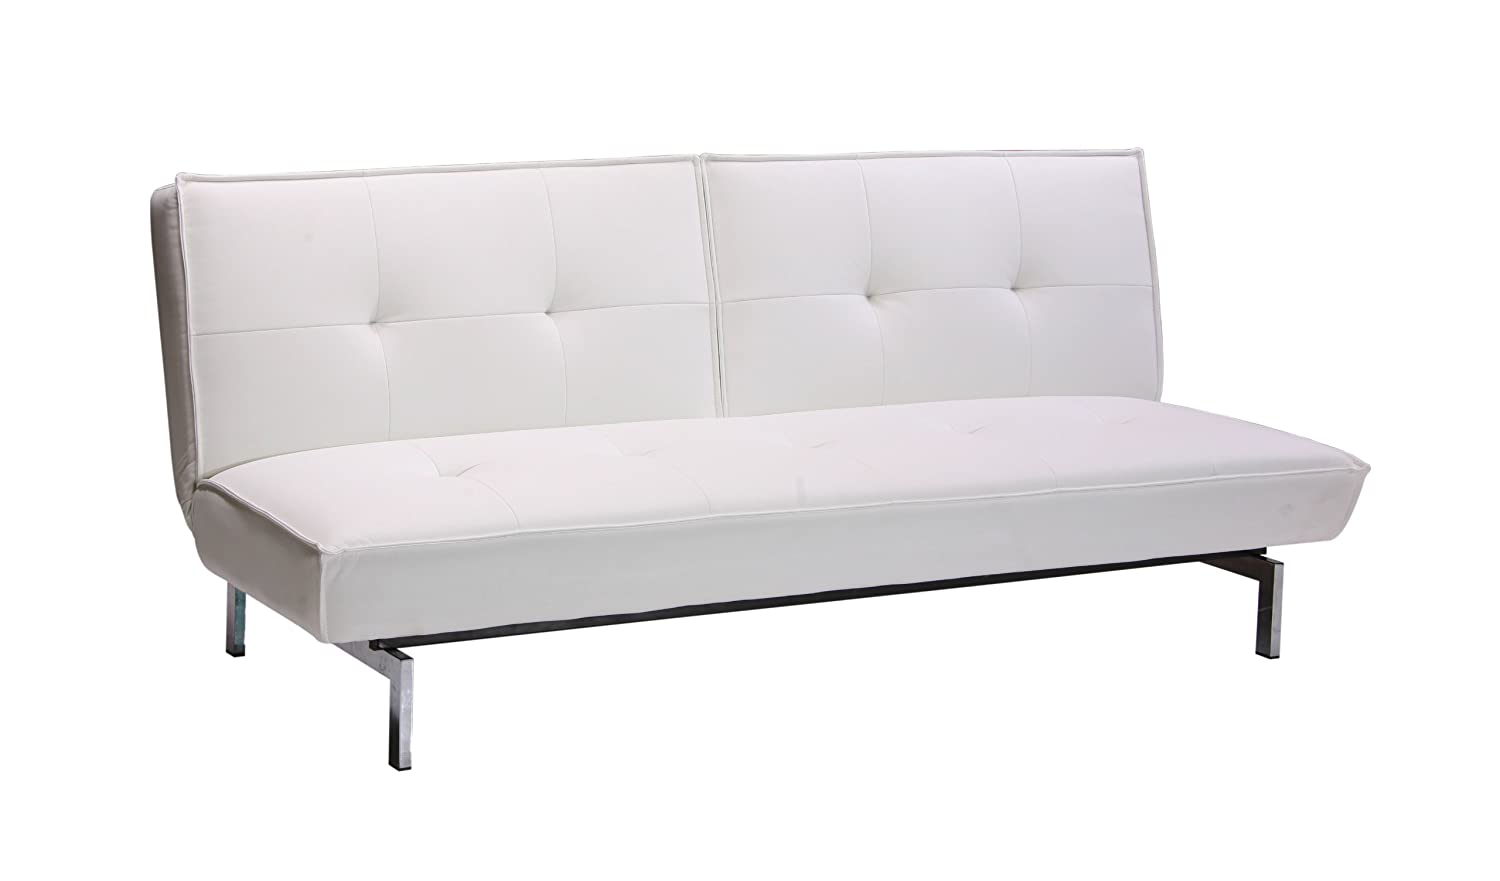 multiple emily design splitback ideas best futon convertible sofa lovely dorel products of unique sleeper size new futons full large home colors